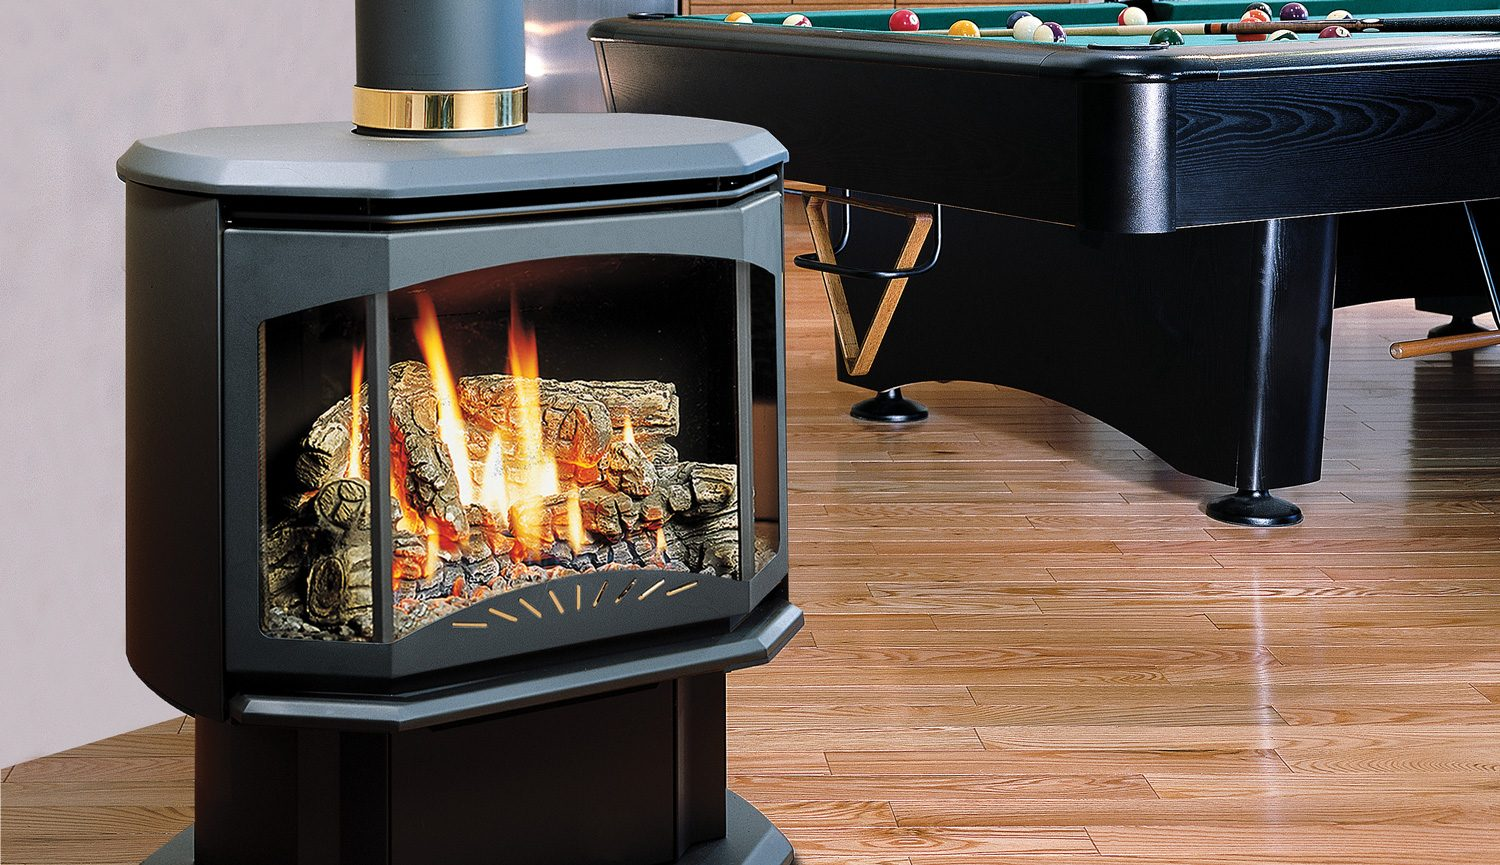 Buy Kingsman Fdv350 Free Standing Direct Vent Gas Stove In